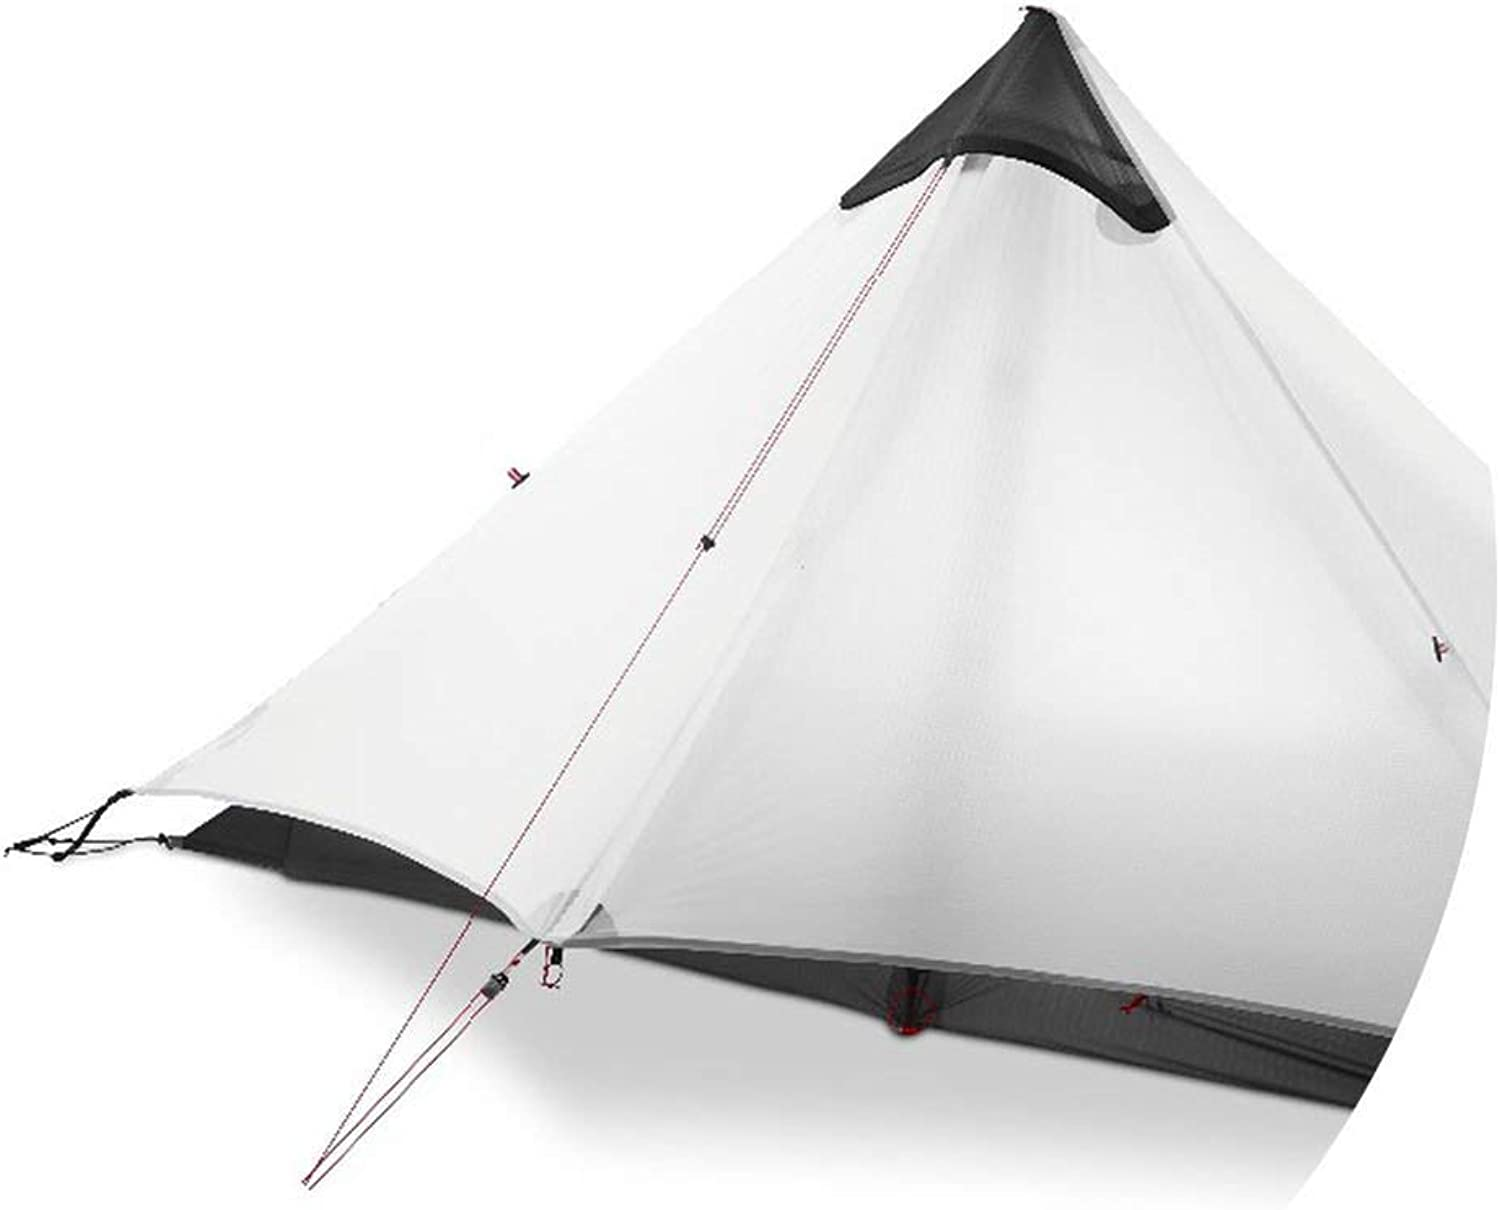 Tent 1 People Outdoor Camping Tent Professional Nylon Silicon Coating Rodless Tent